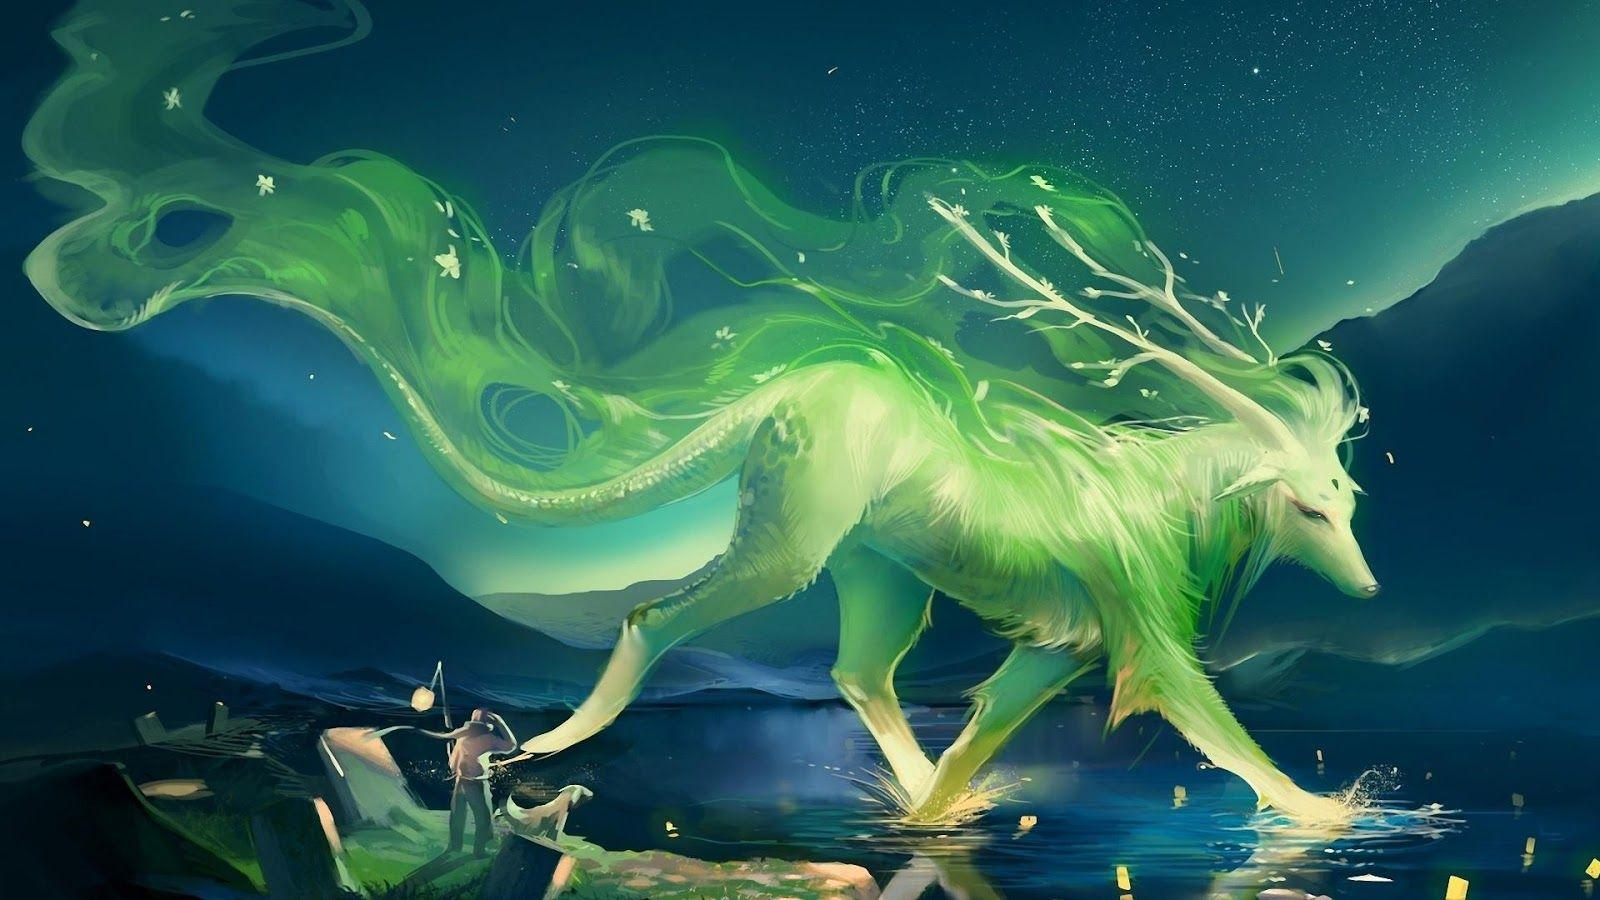 Hd wallpaper you need - New Amazing Wallpapers Collection 2013 All You Need